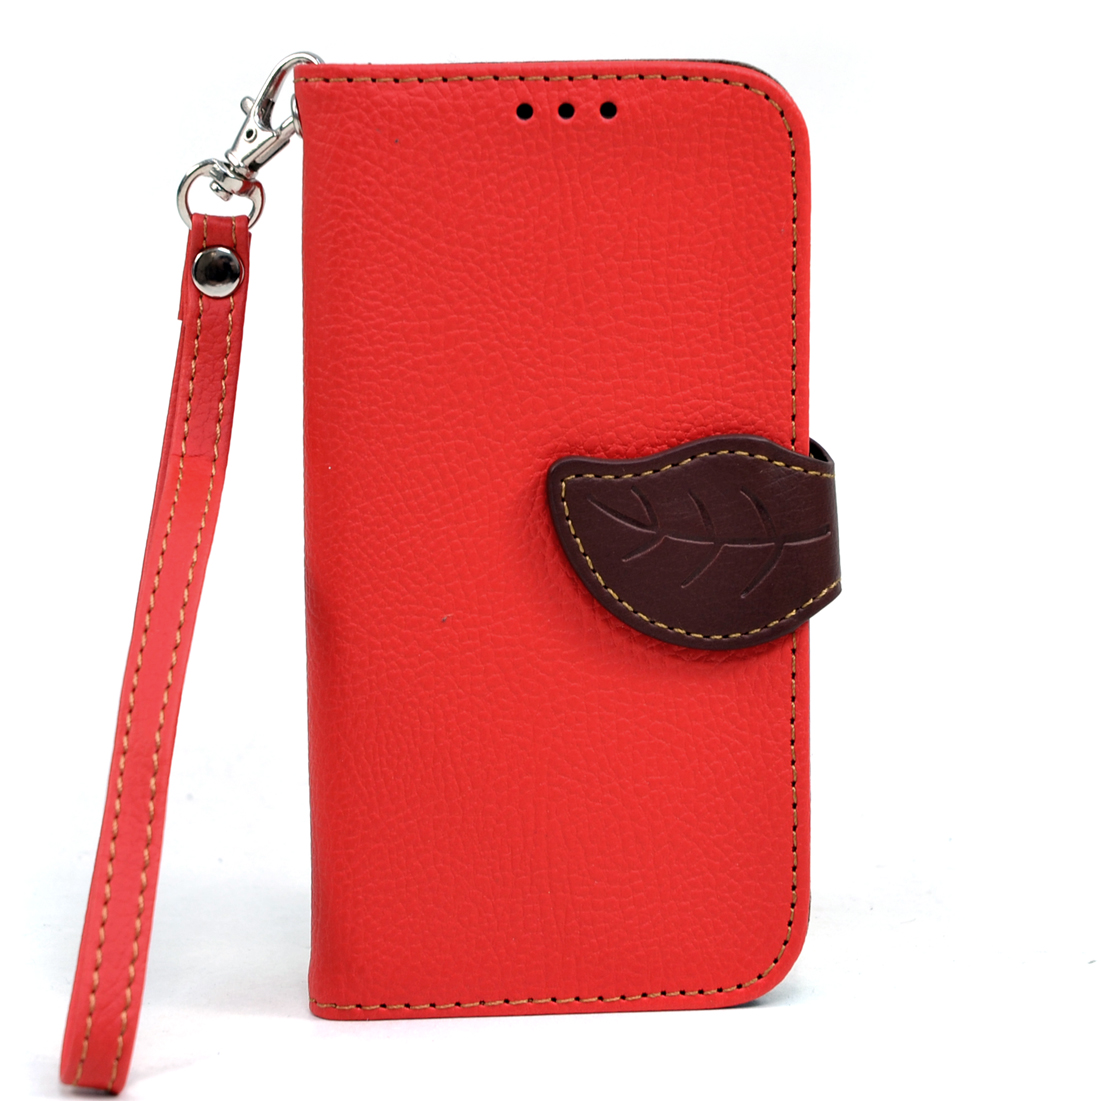 Dasein® Leaf Design Faux Leather Cell Phone Case for Samsung Galaxy S4